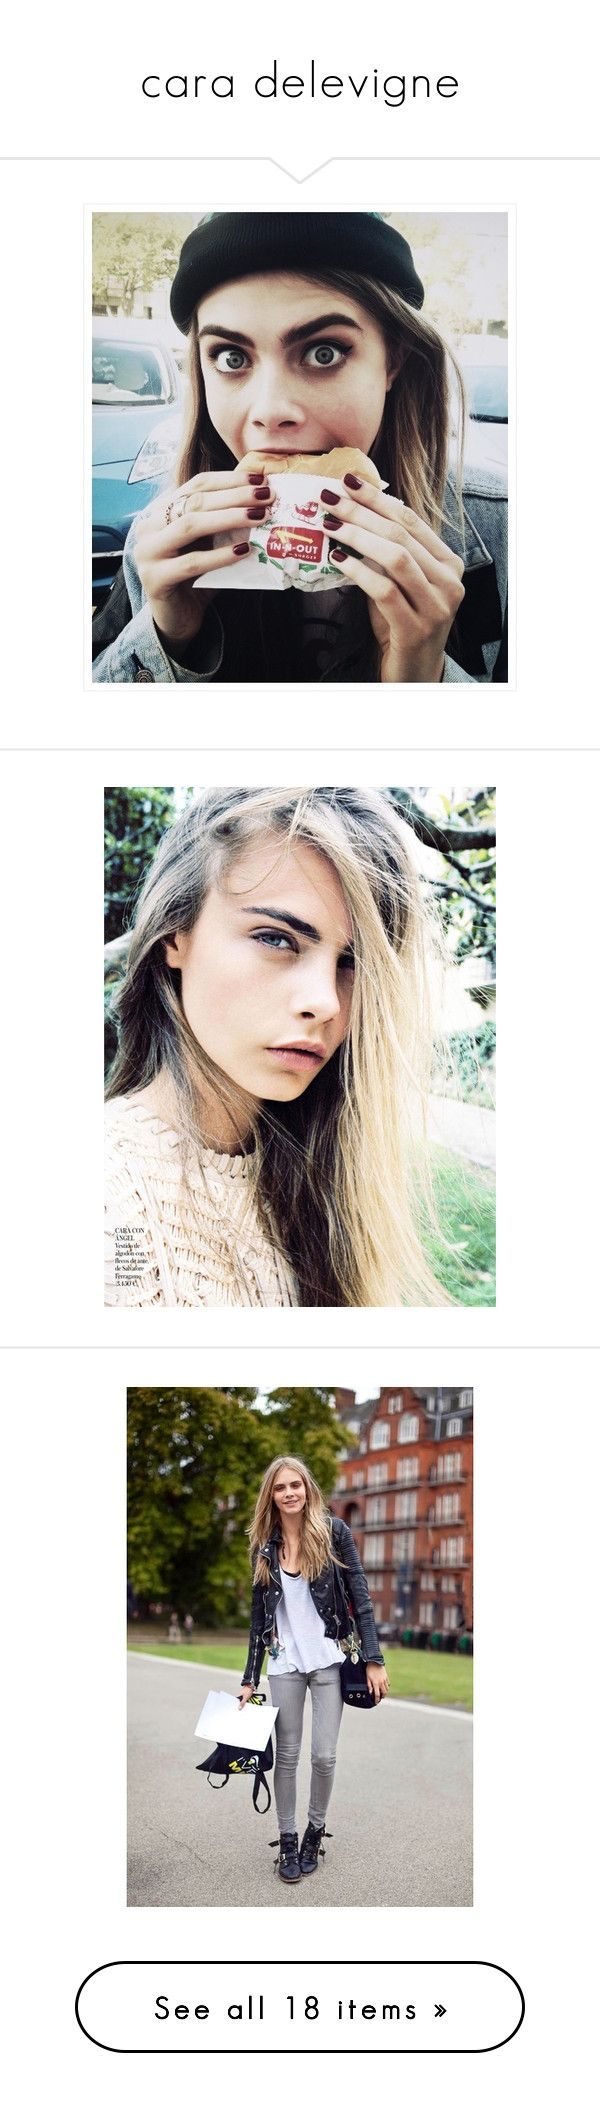 """cara delevigne"" by la-petite-brune ❤ liked on Polyvore featuring cara delevingne, people, pictures, cara, cara delevigne, models, backgrounds, editorials, hair and icons"